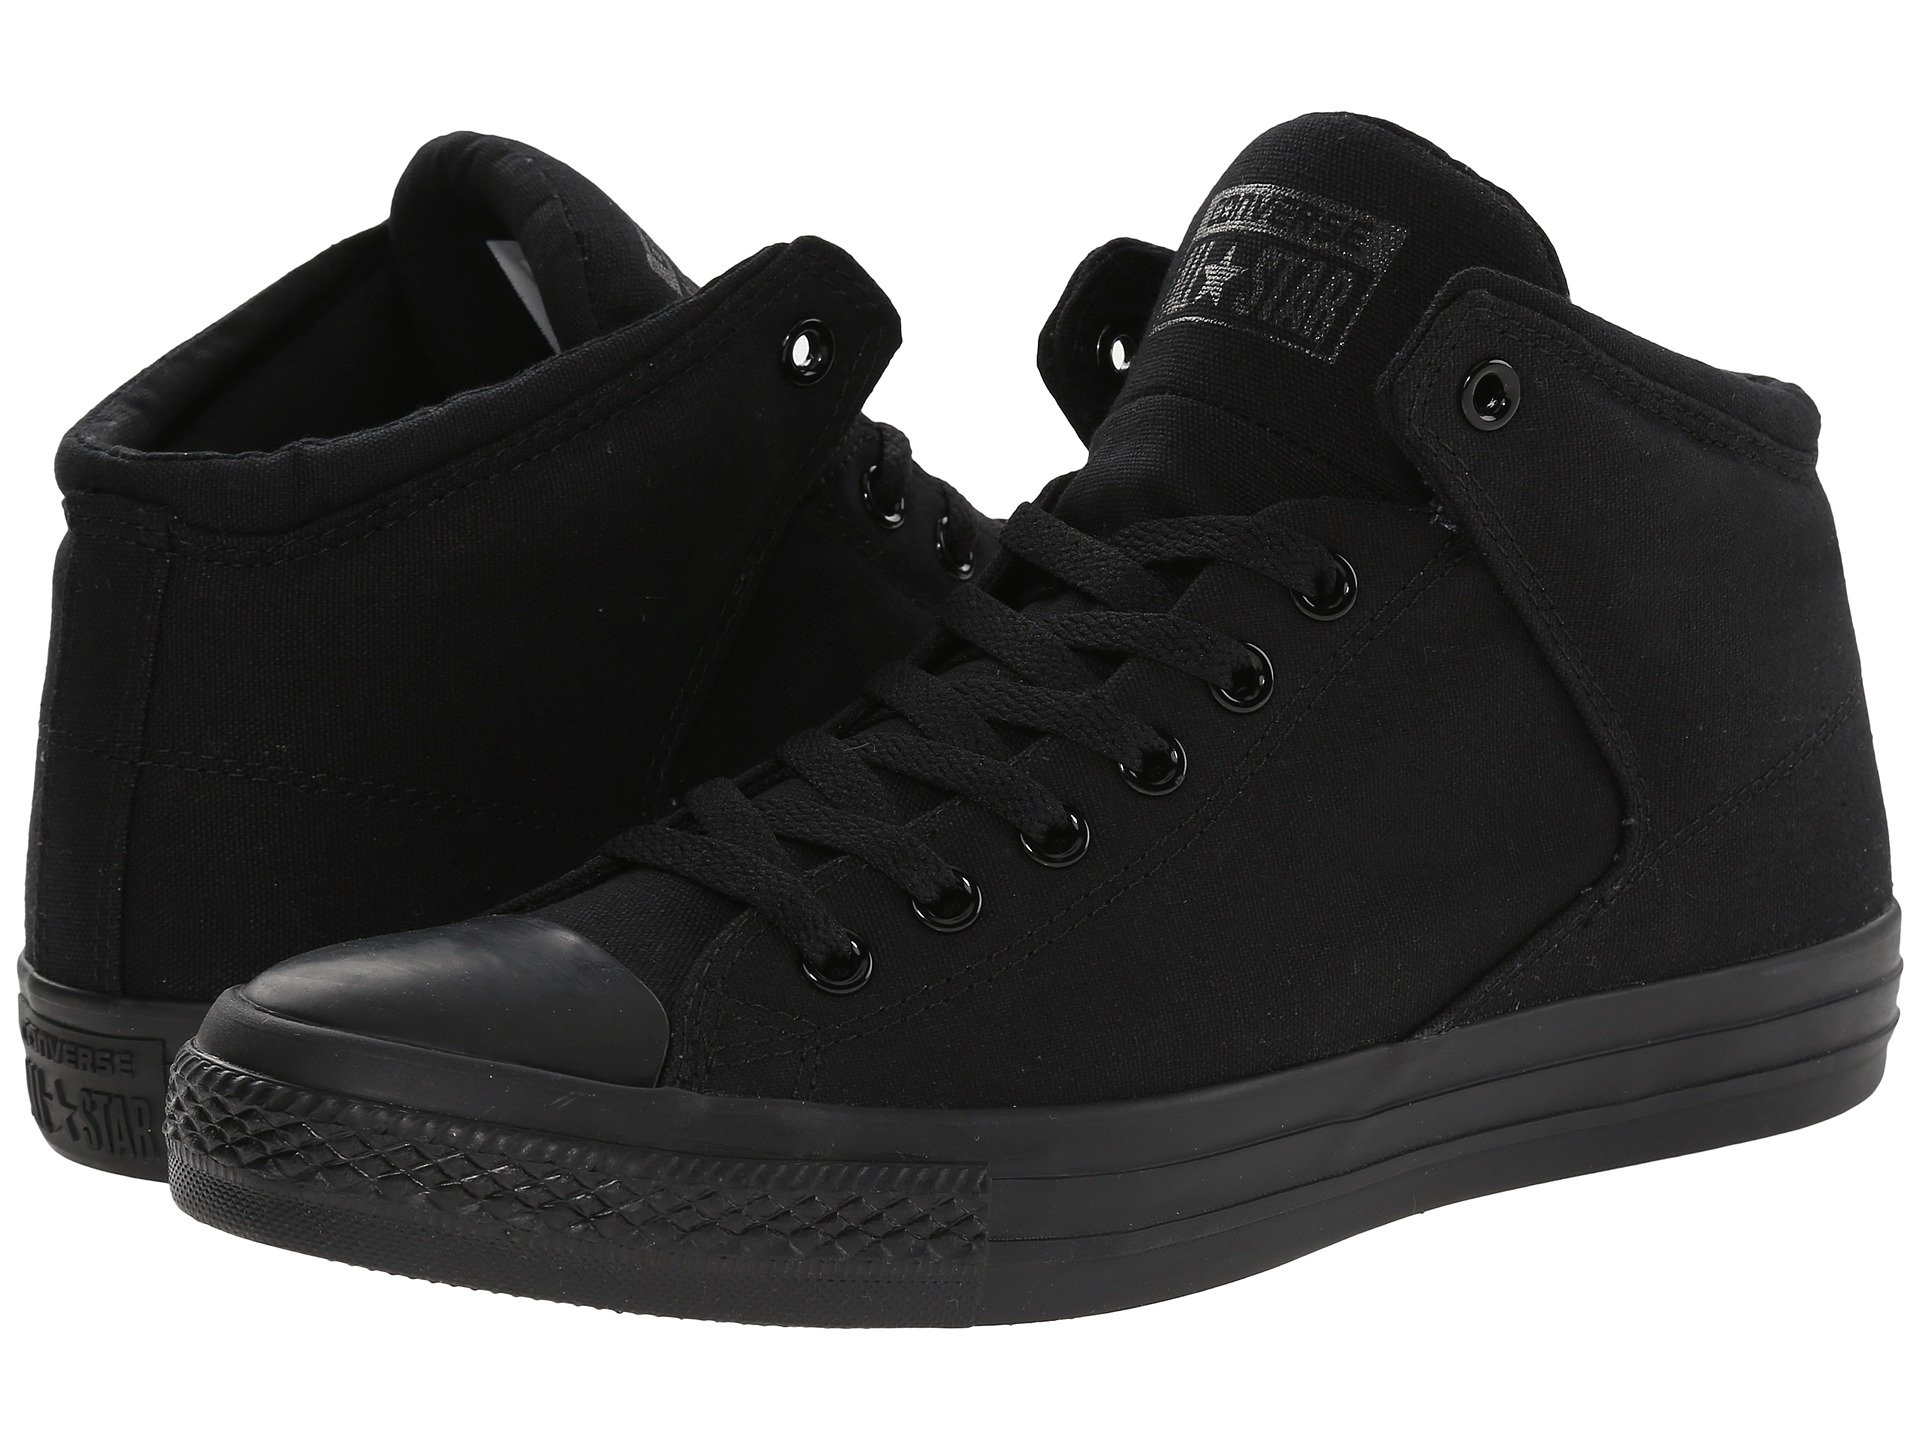 e0d4326cbfde38 Black Black Black. Converse. Chuck Taylor® All Star® High Street Mono Canvas  Hi